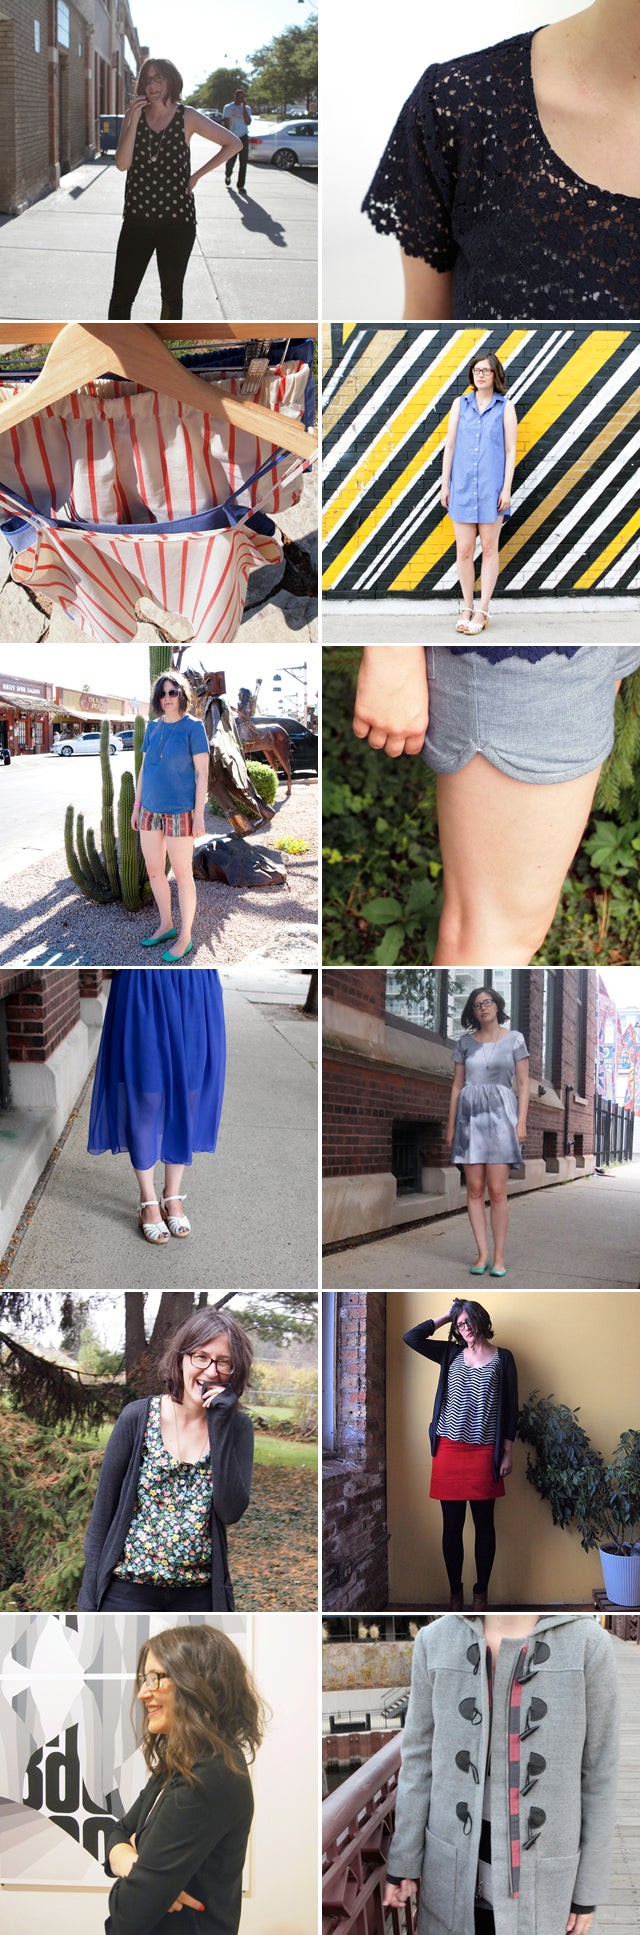 2012 Recap | Sewn Projects | Grainline Studio